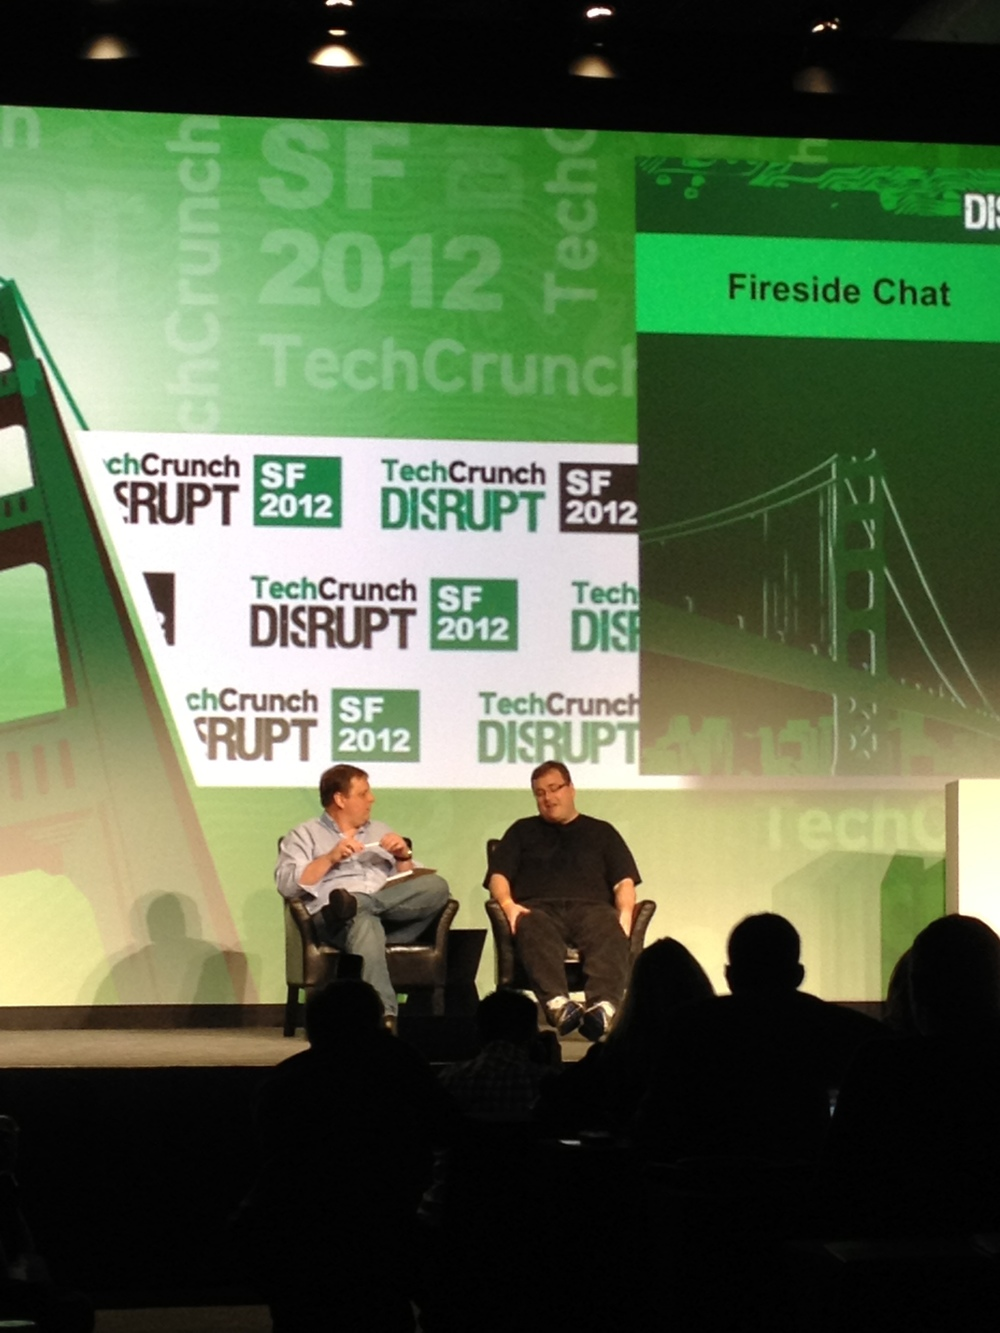 Reid Hoffman interviewed by Michael Arrington.